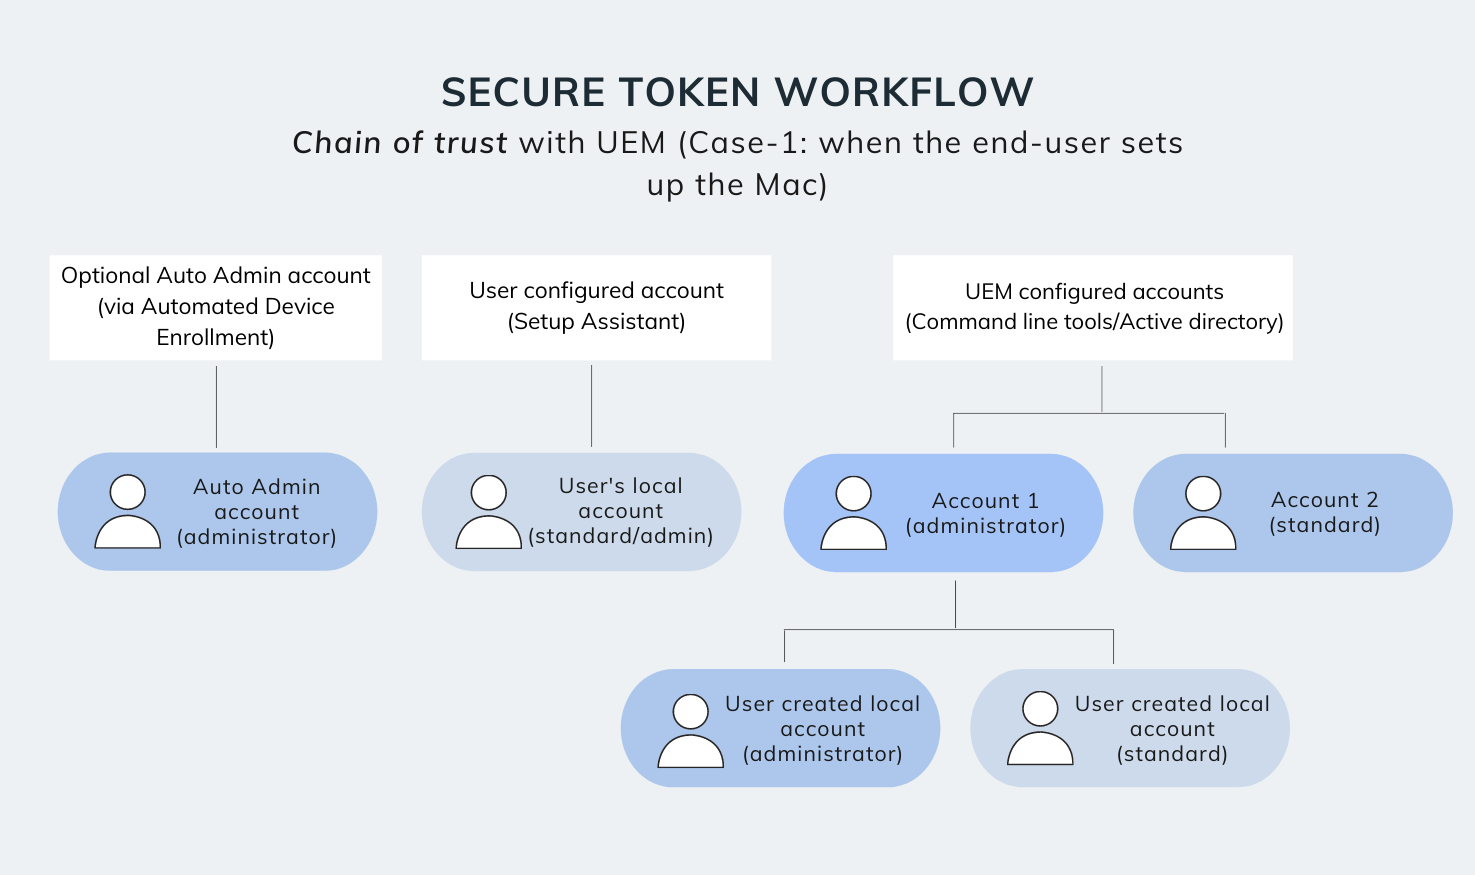 Secure token workflow with UEM - Case 1